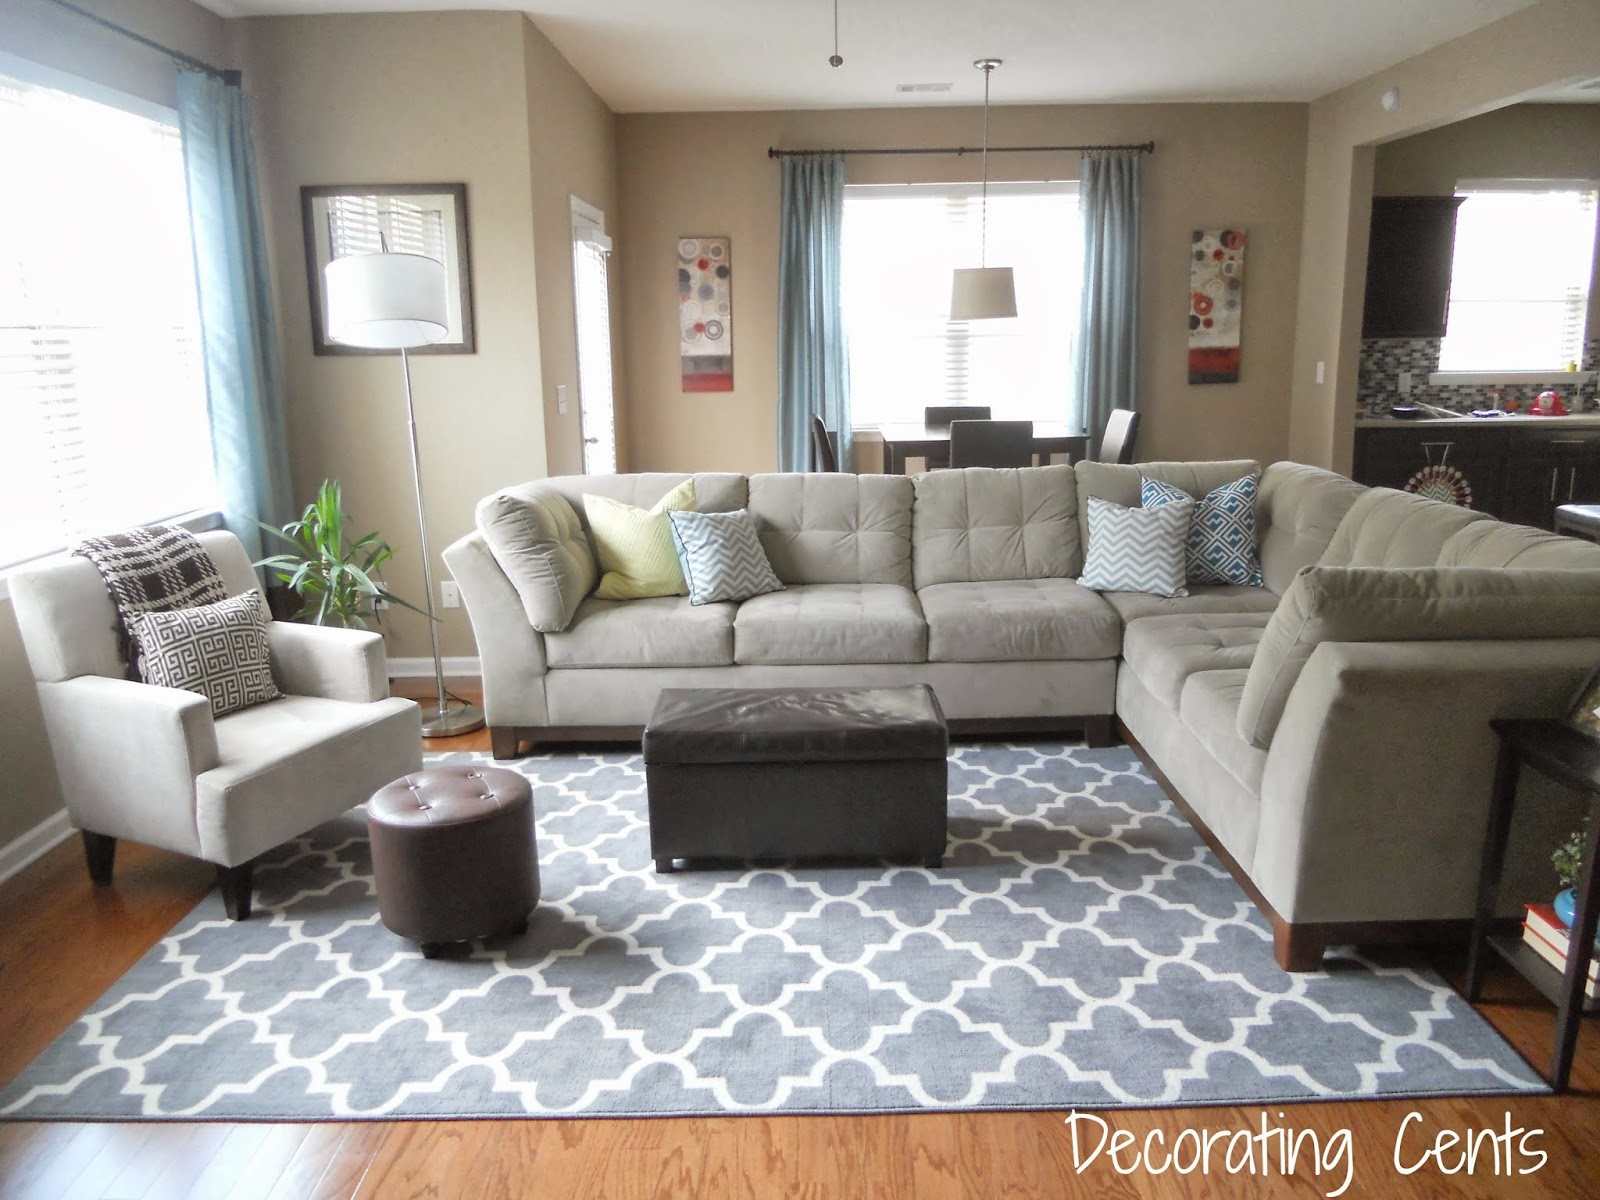 Decorating cents new family room rug for Living room rug ideas